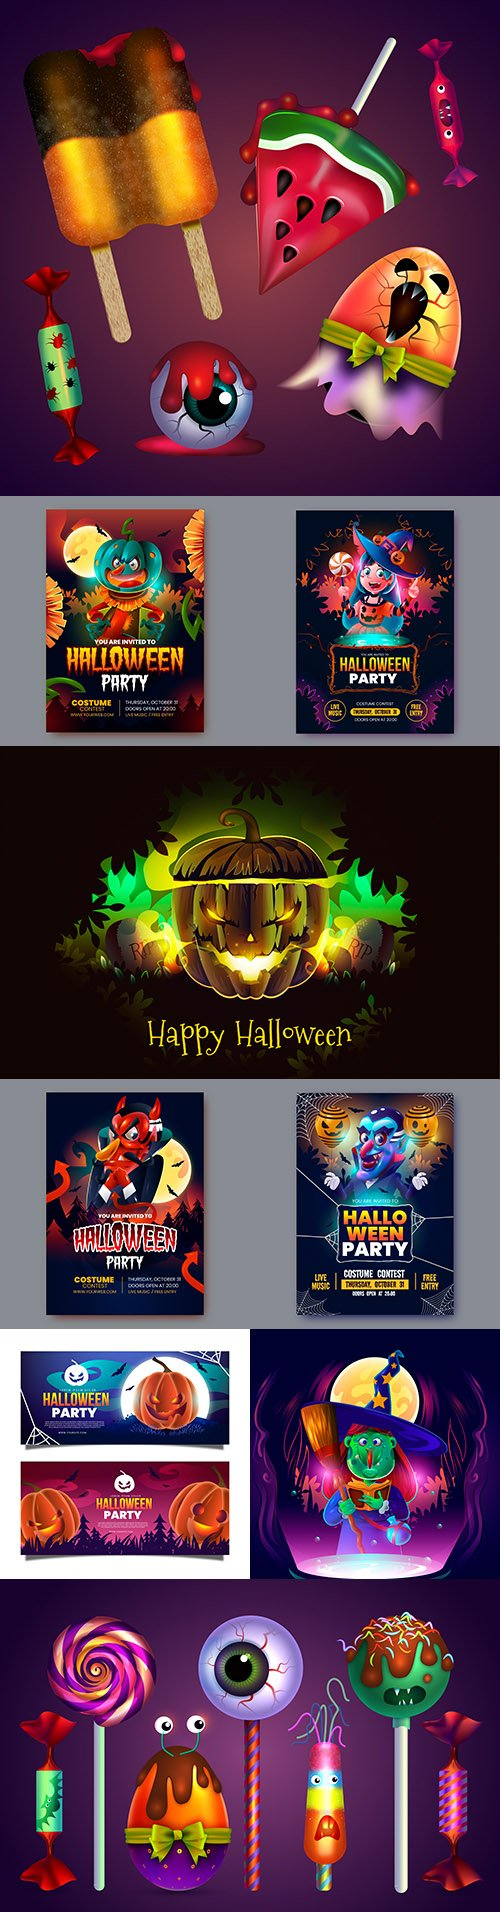 Happy Halloween holiday banner realistic illustration collection